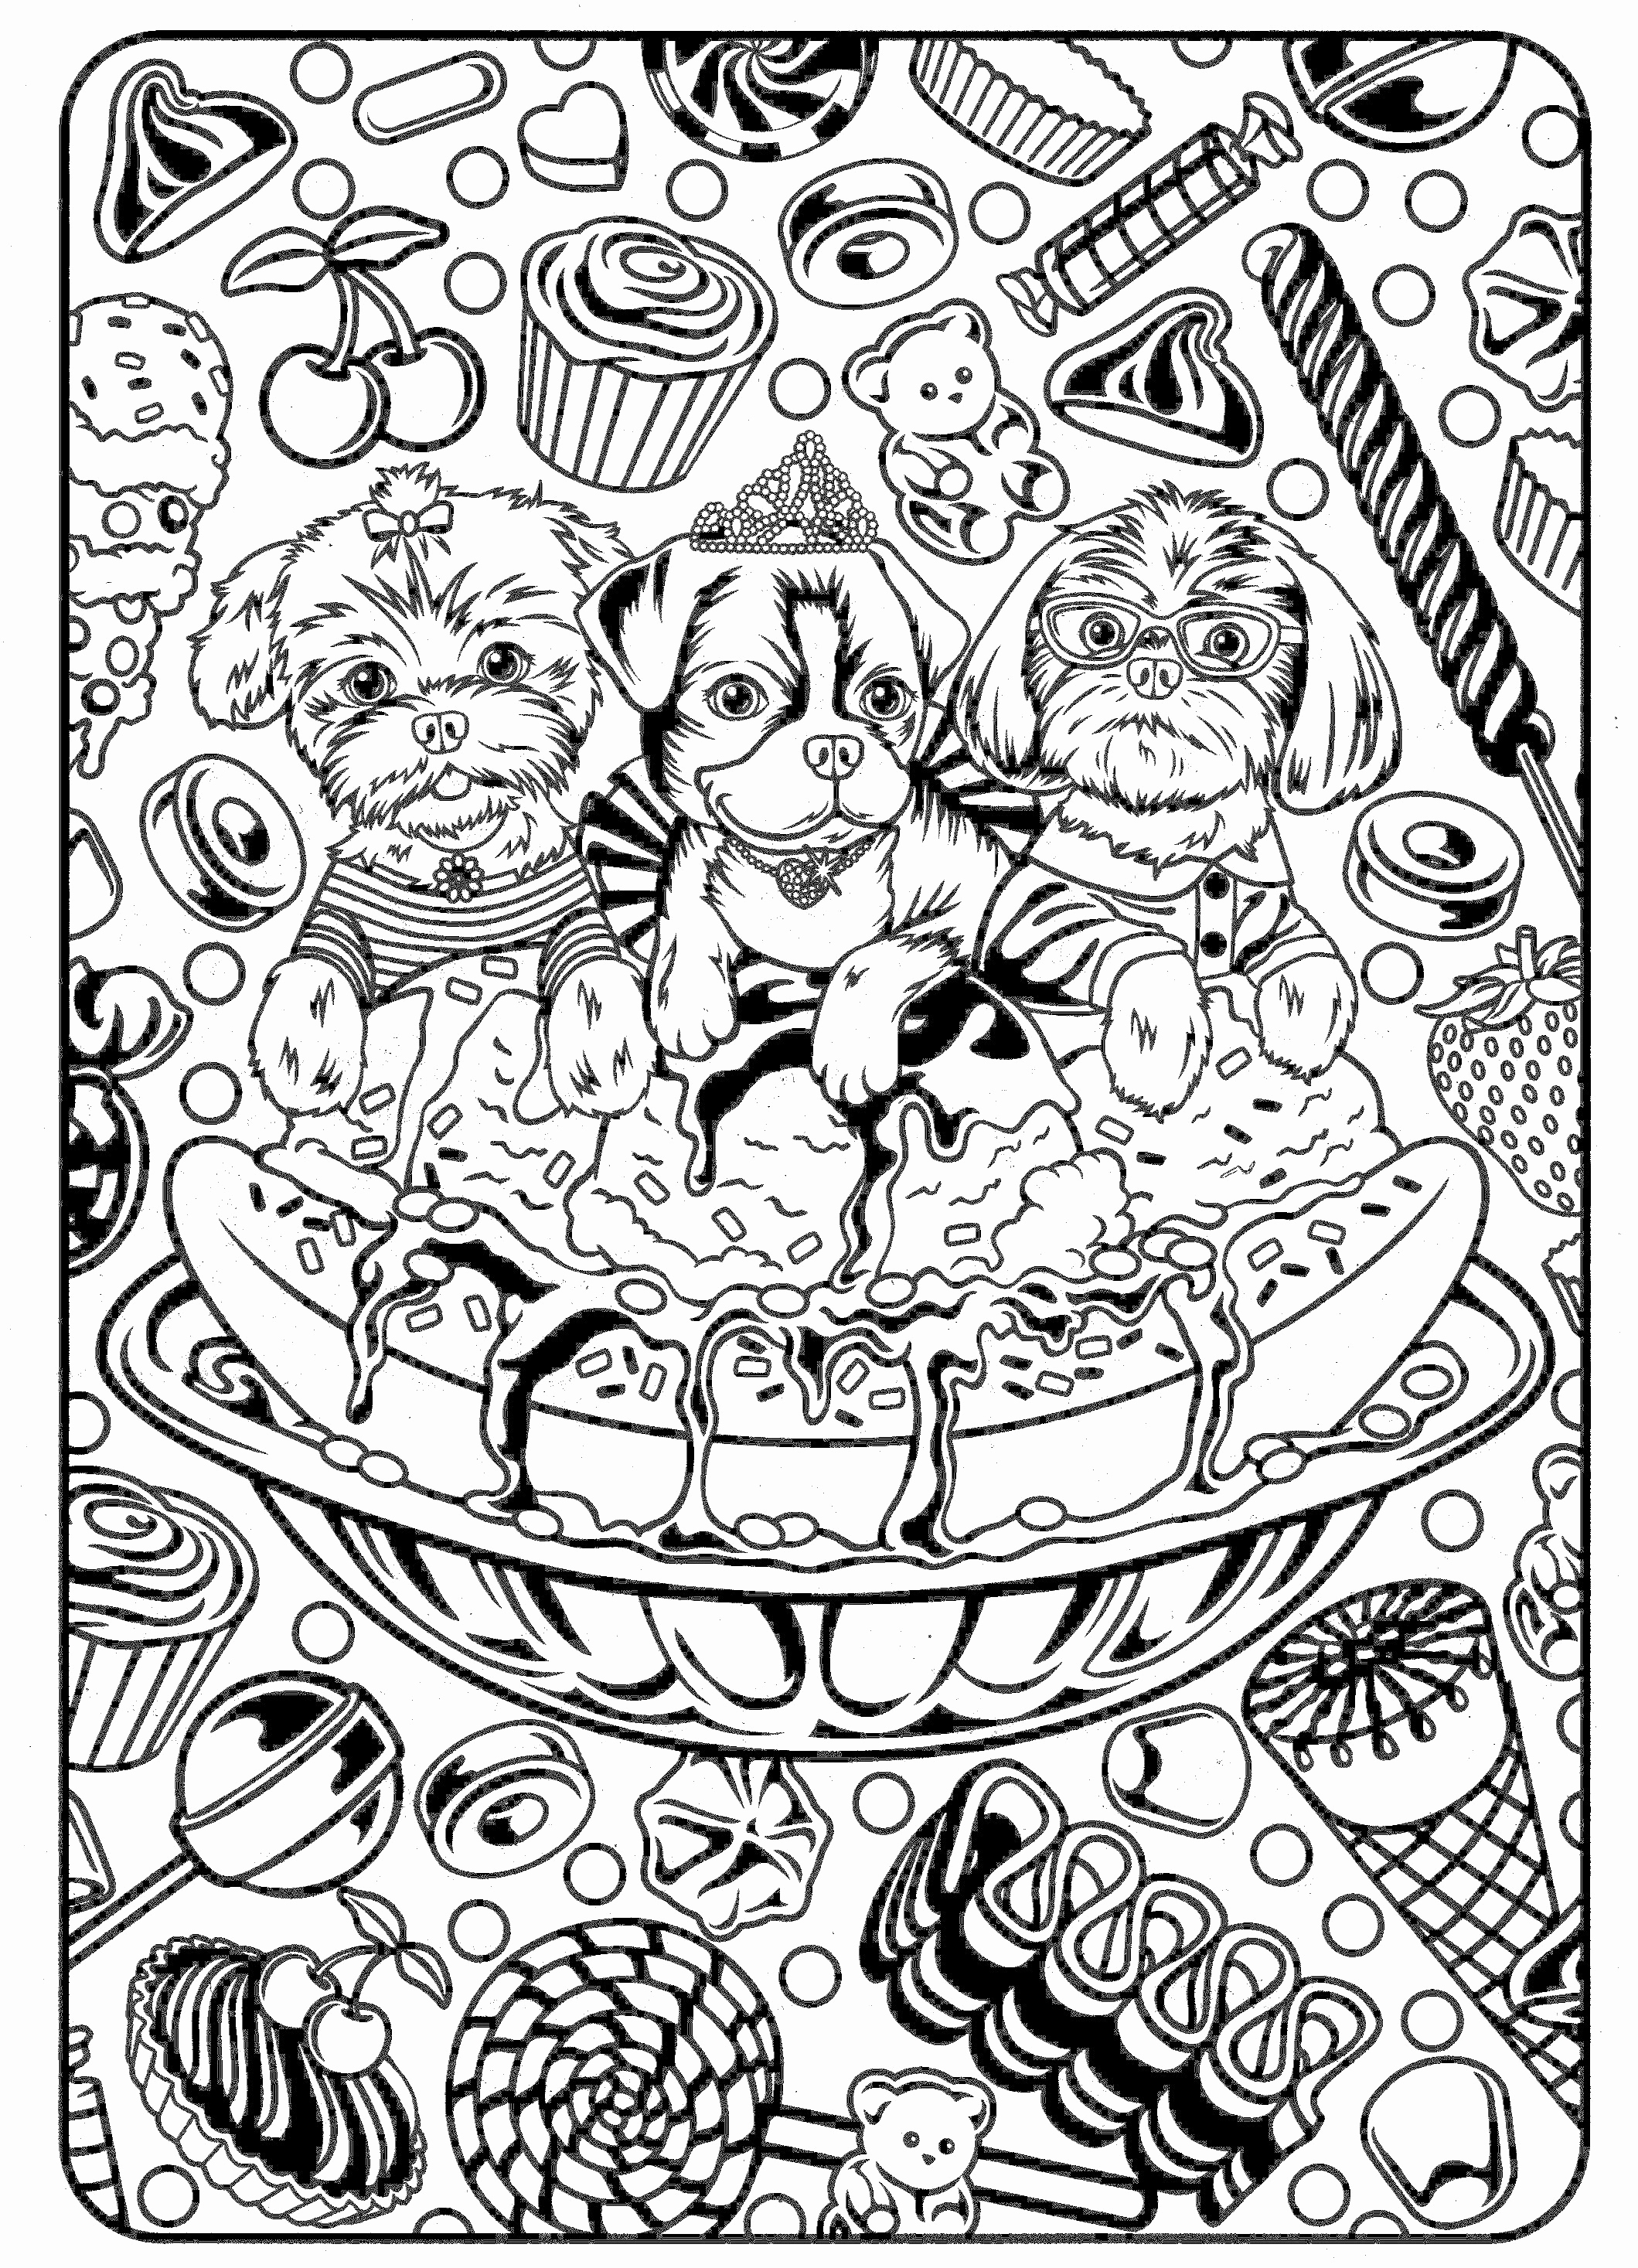 coloring pages for adults in recovery recovery coloring pages at getcoloringscom free in pages for adults coloring recovery